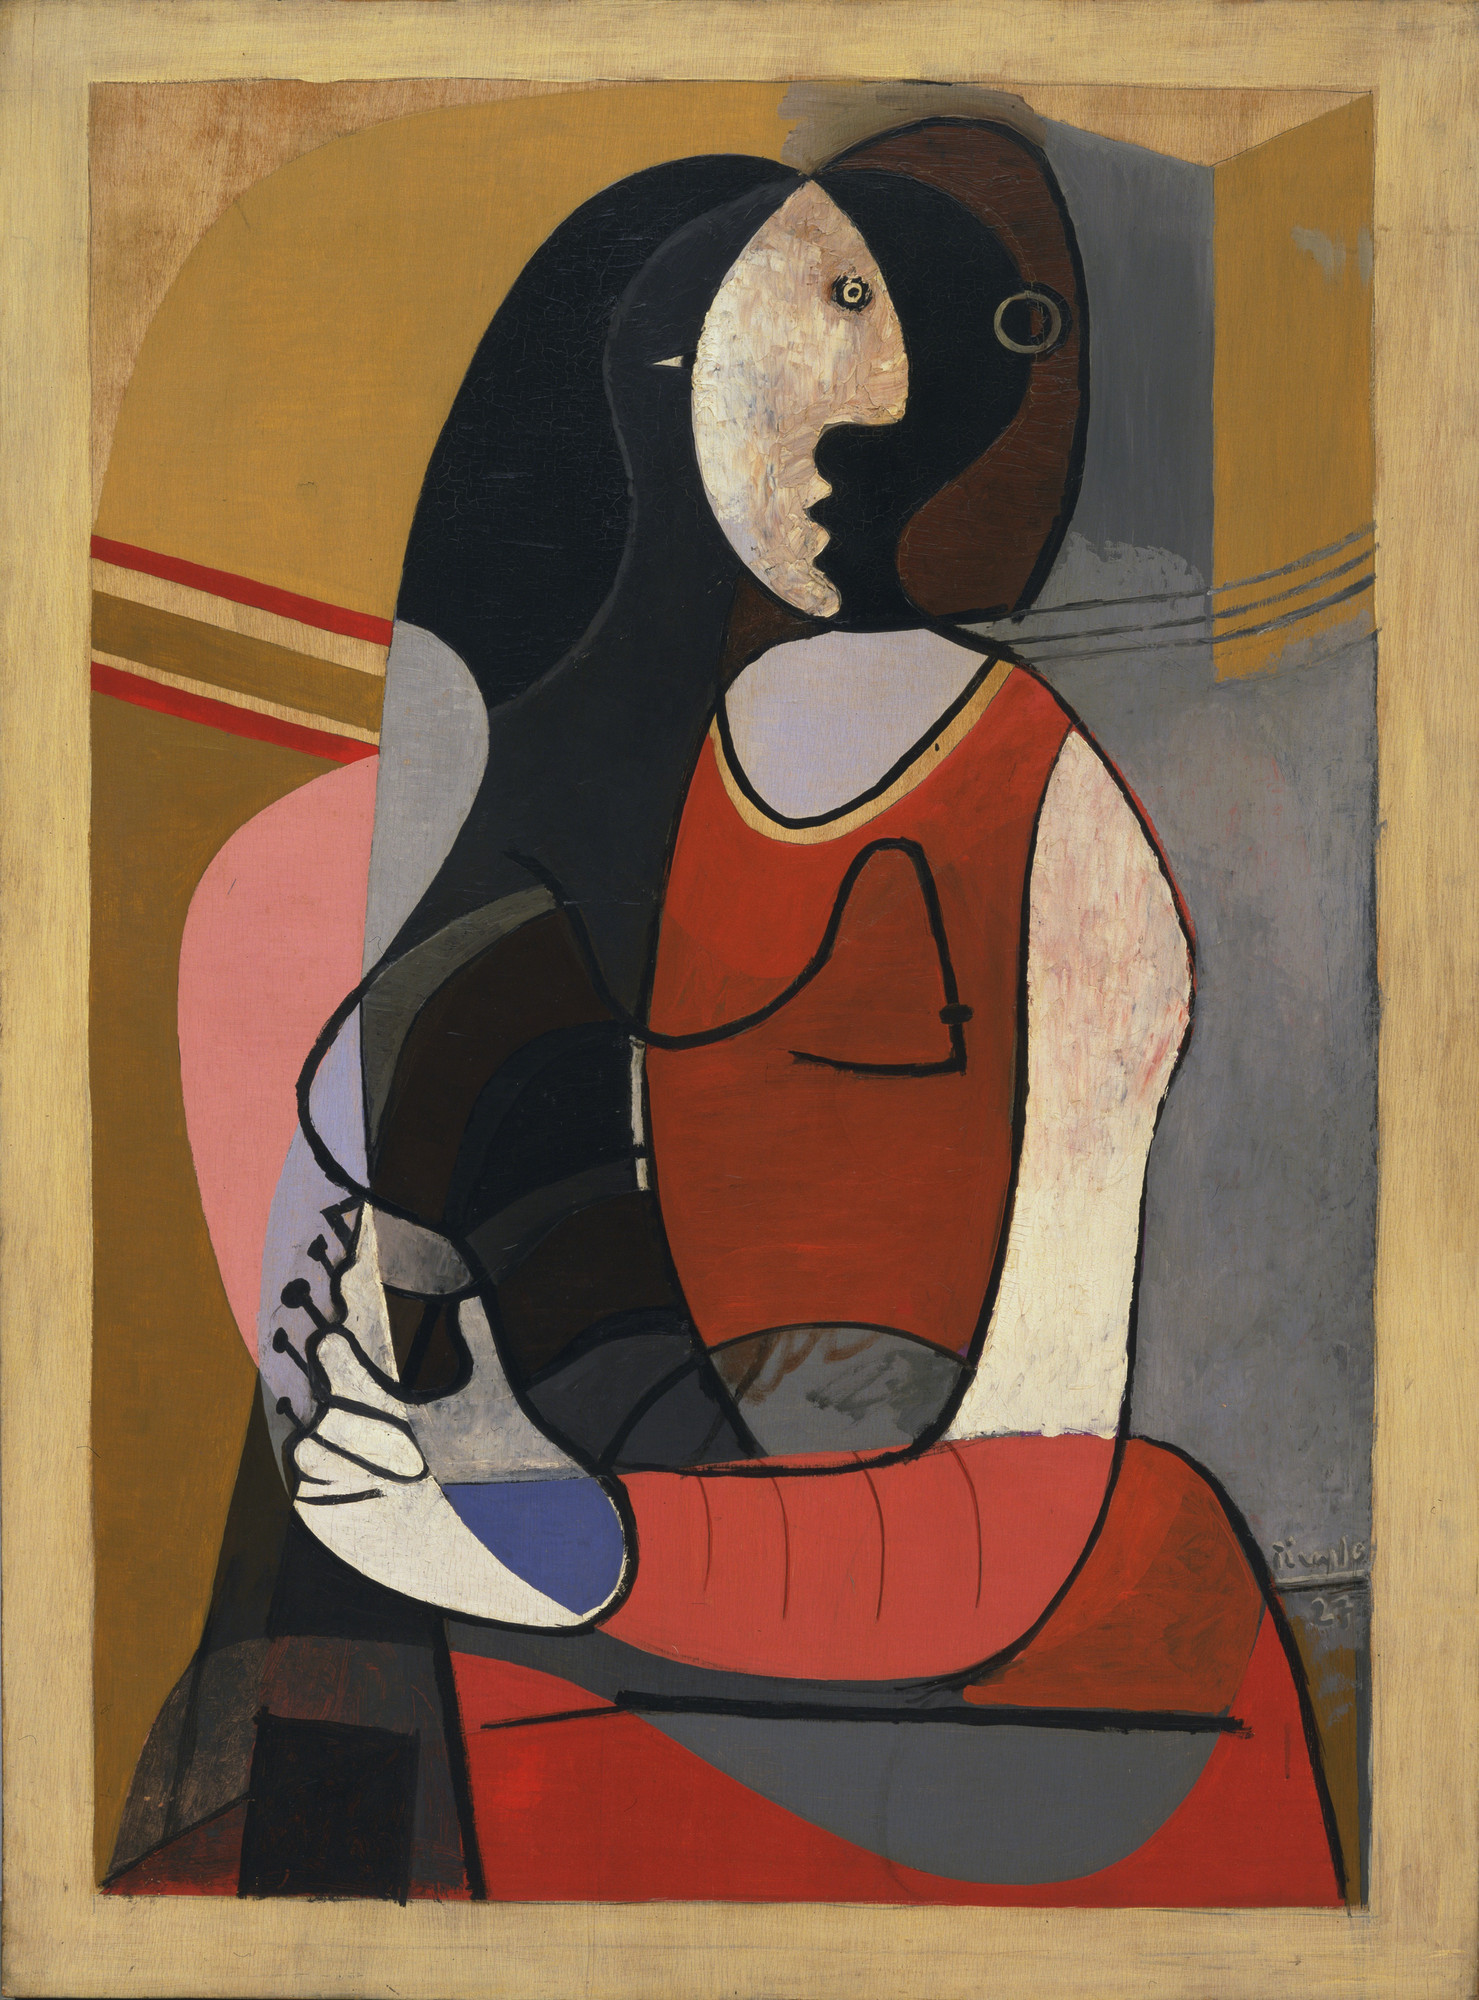 Pablo Picasso. Seated Woman. Paris, 1927